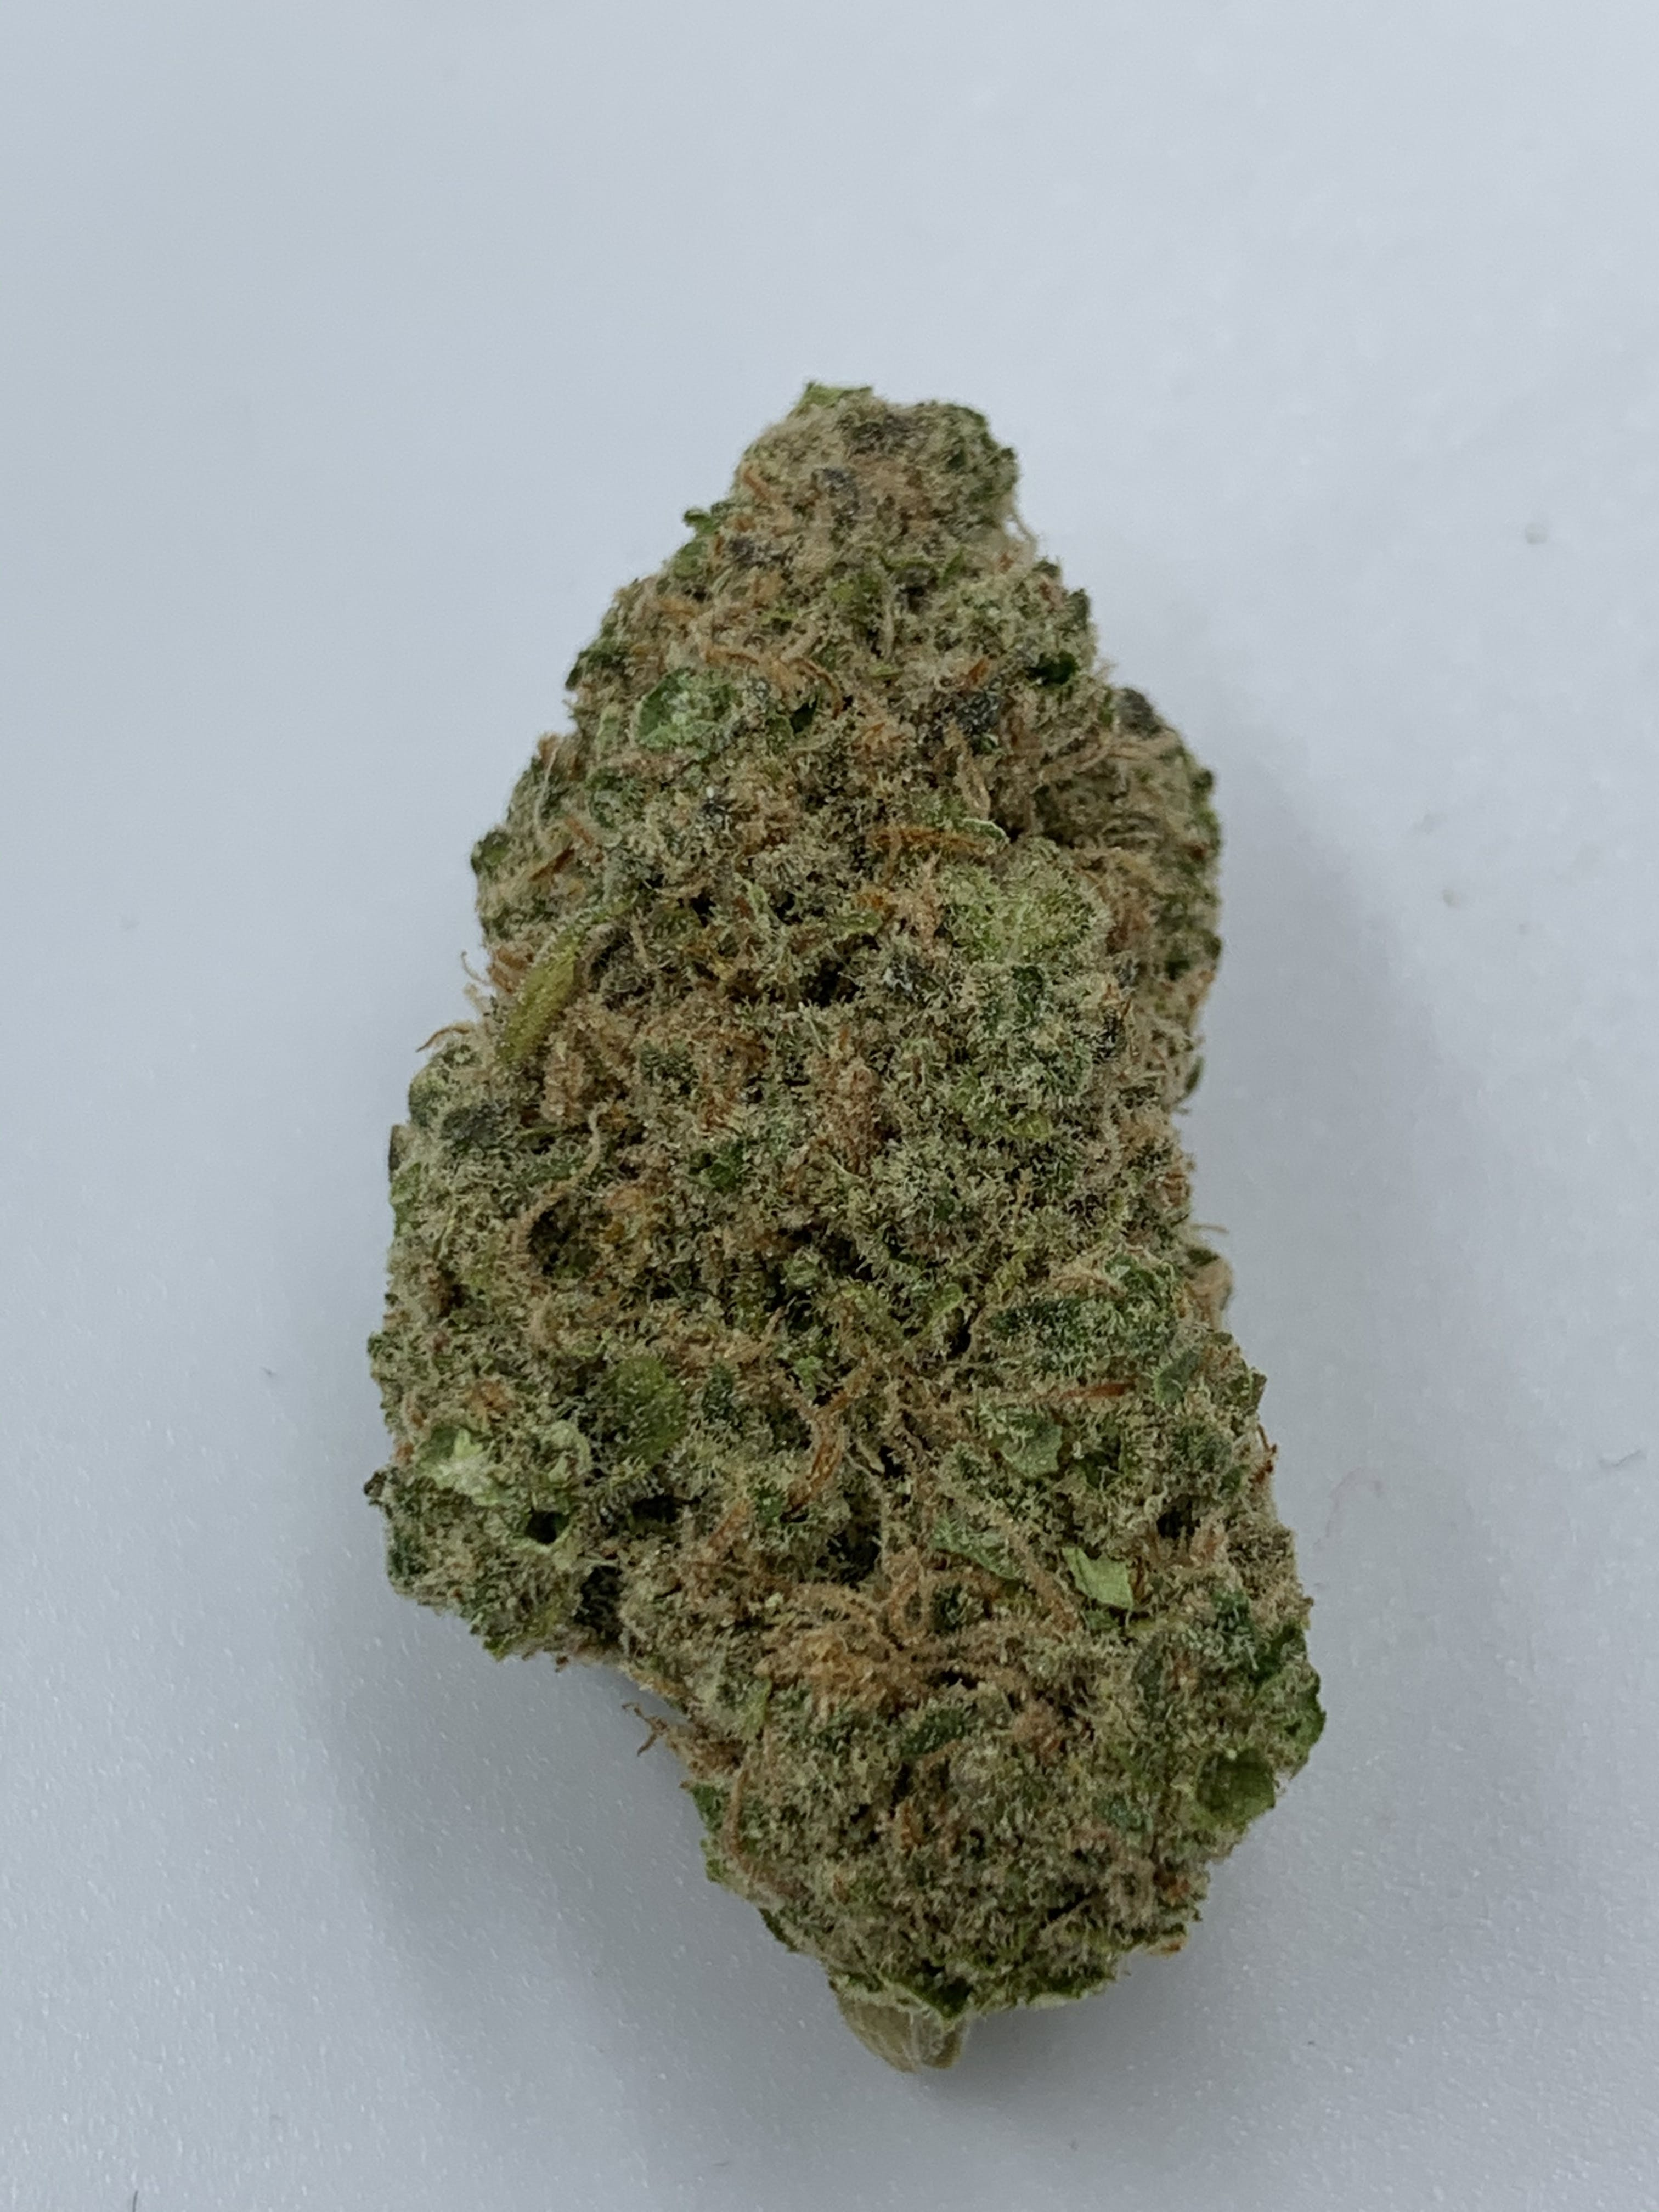 ECLIPSE PHARMS - CANDYLAND 1G 1 GRAMS